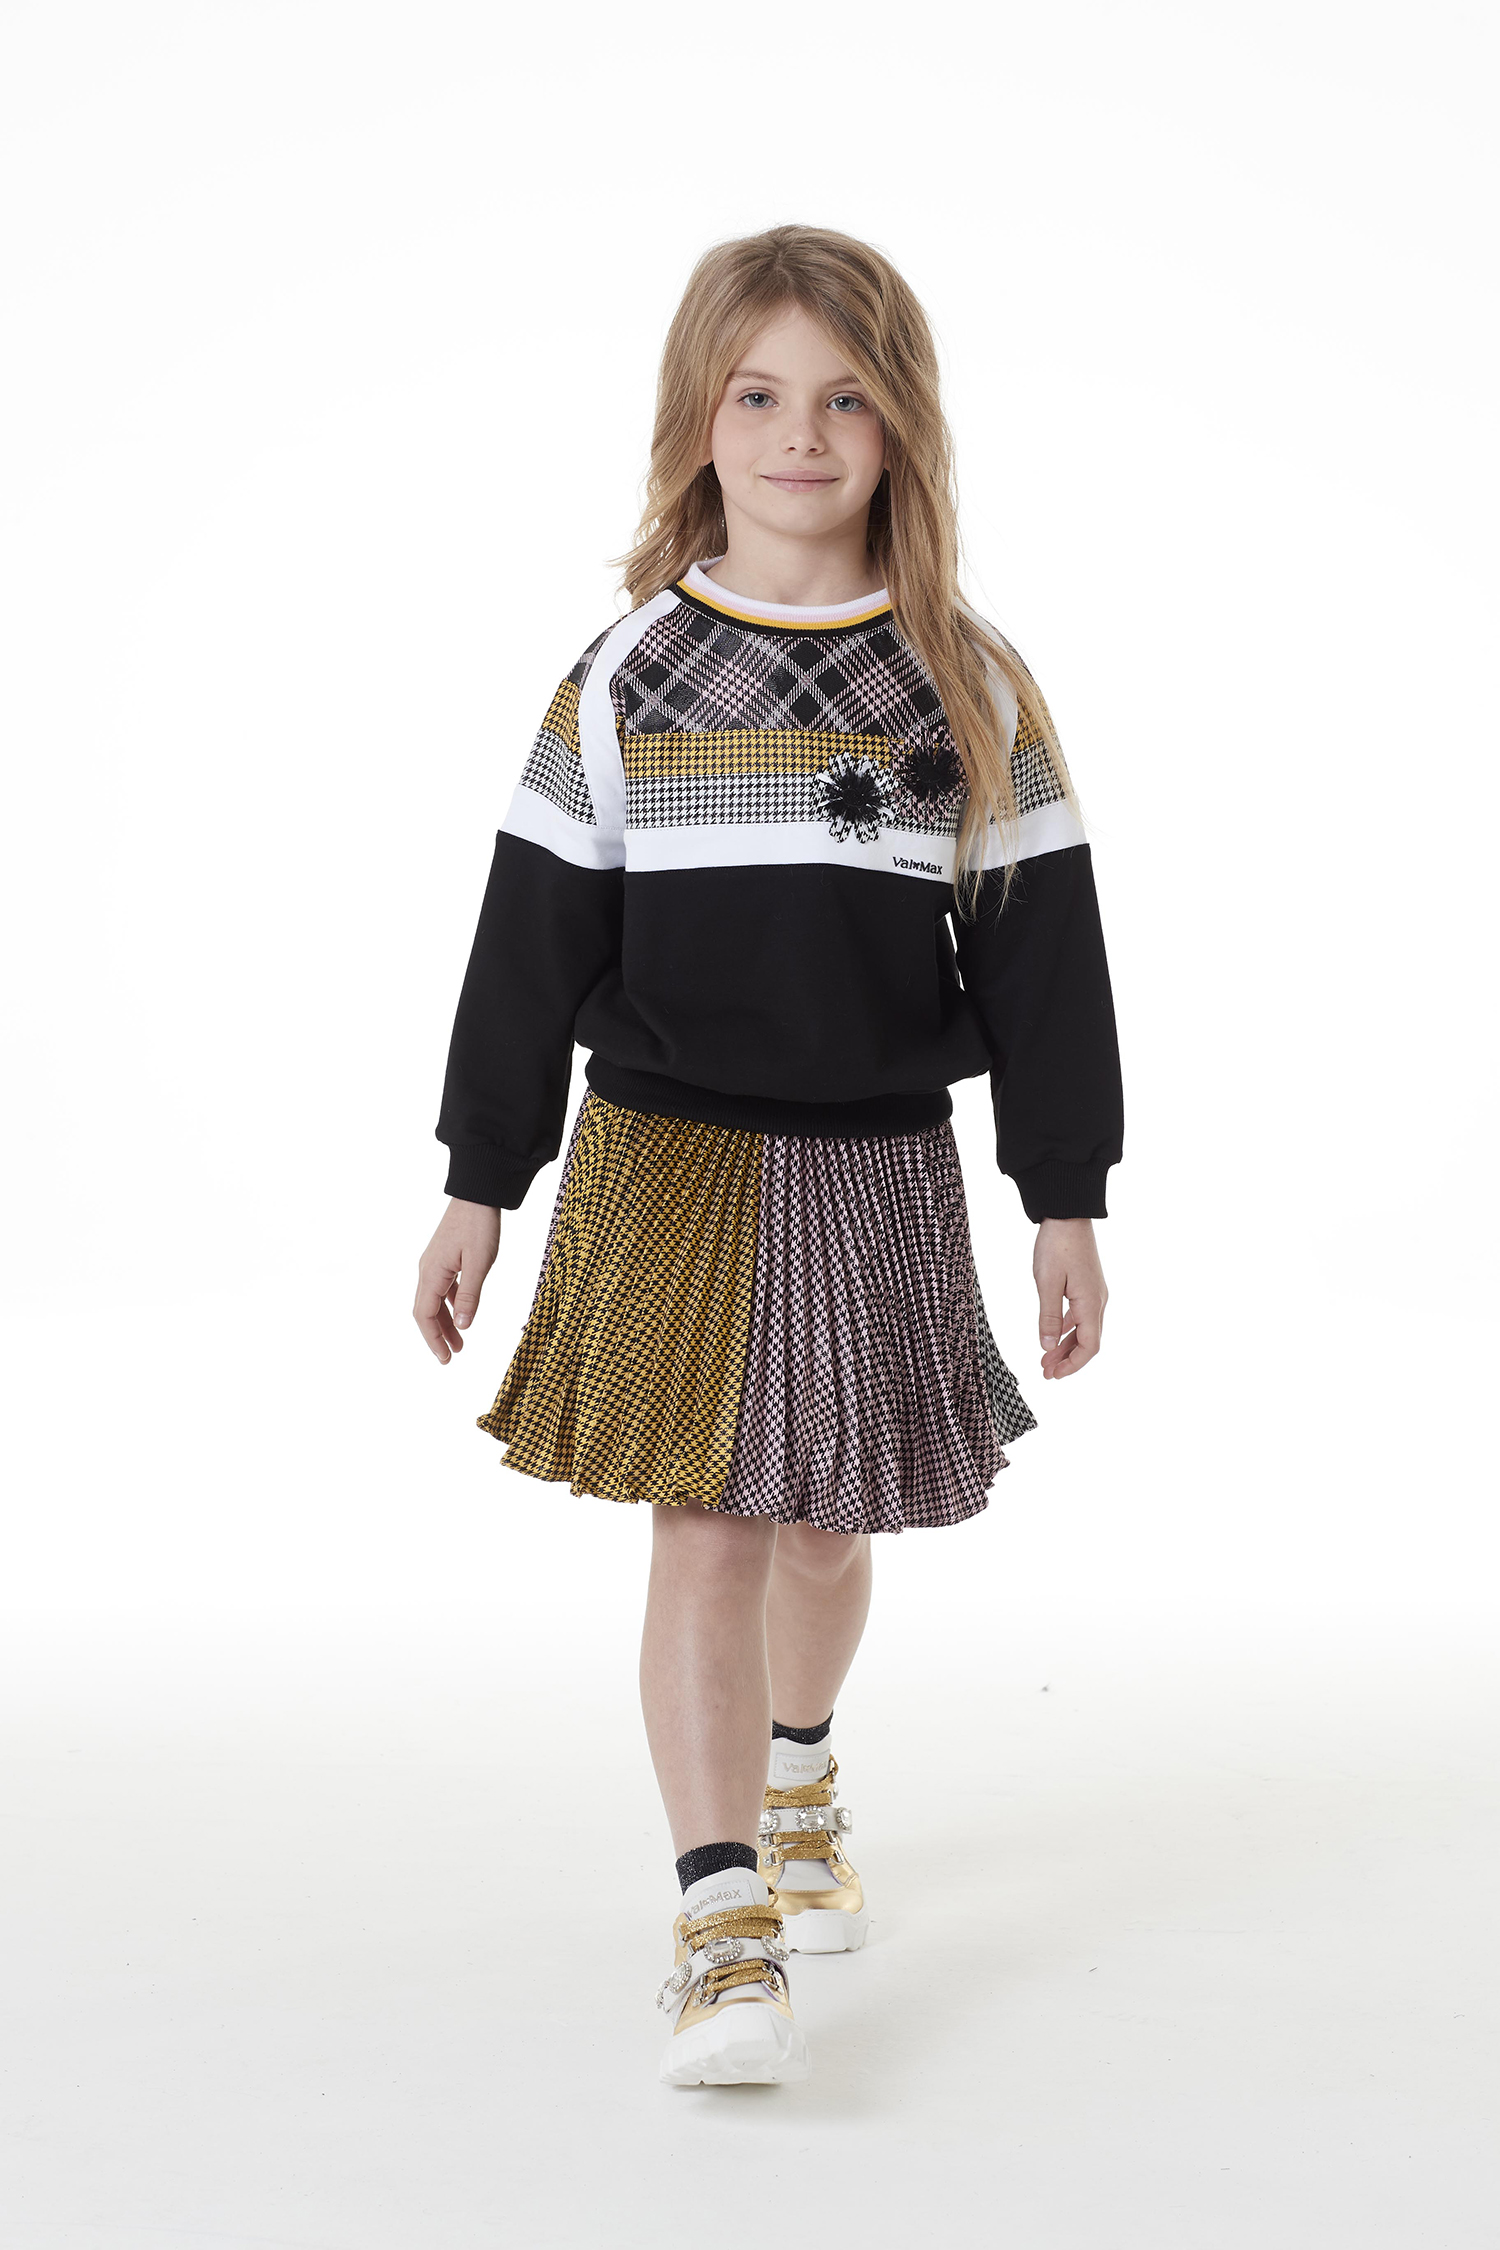 002 skirt - 002 sweatshirt